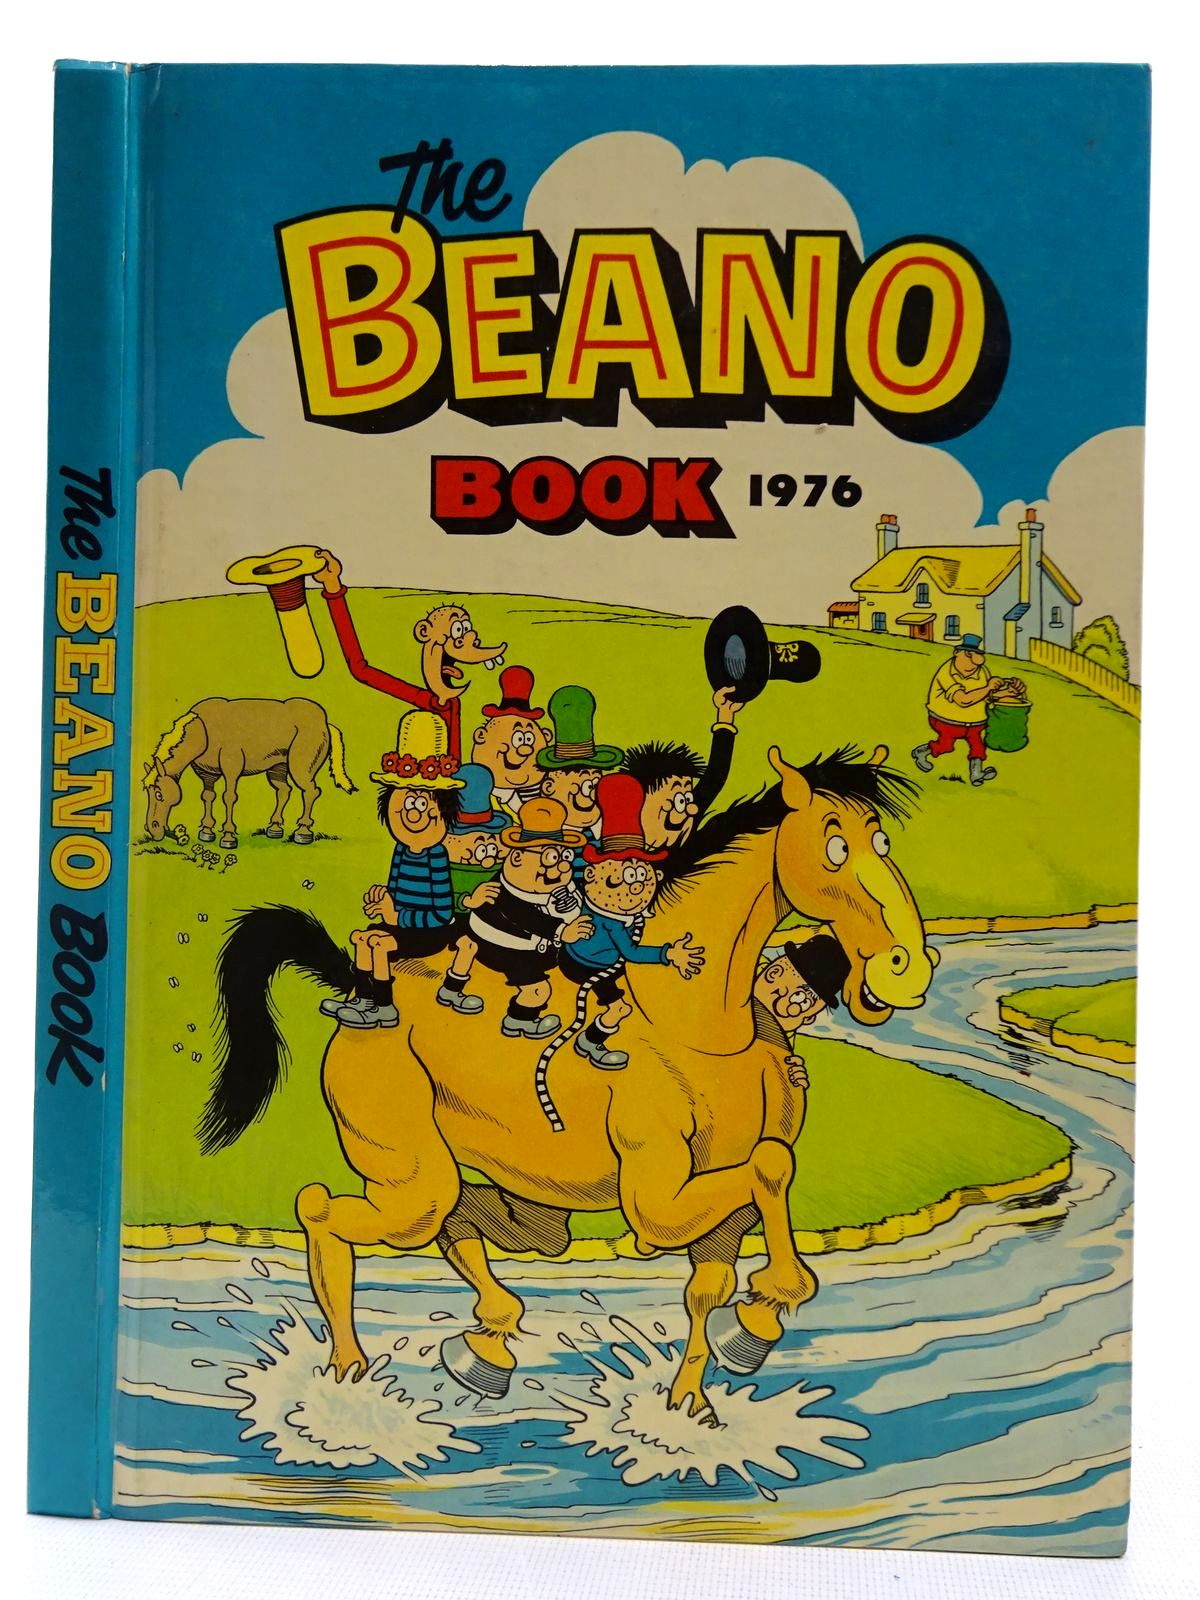 Photo of THE BEANO BOOK 1976 published by D.C. Thomson & Co Ltd. (STOCK CODE: 2128358)  for sale by Stella & Rose's Books